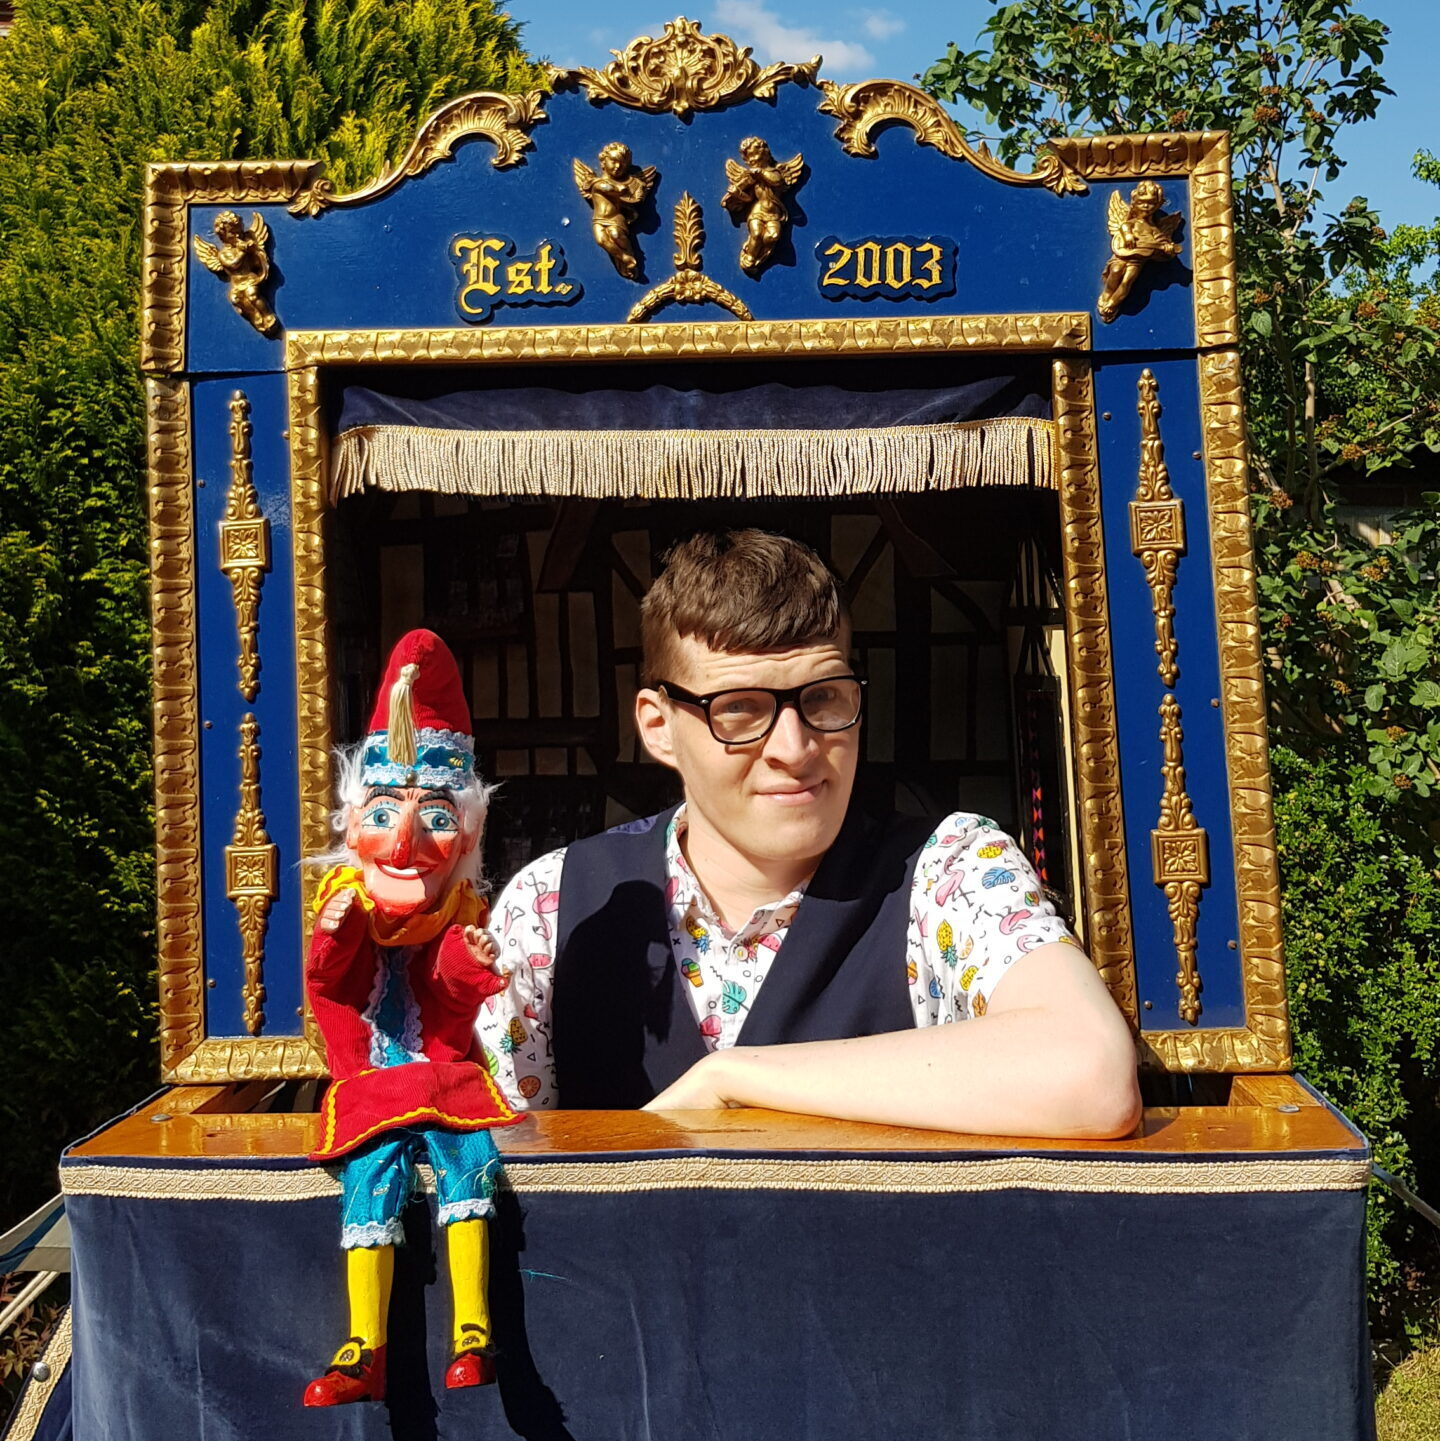 Mr Punch and Harvo inside the Punch and Judy Theatre